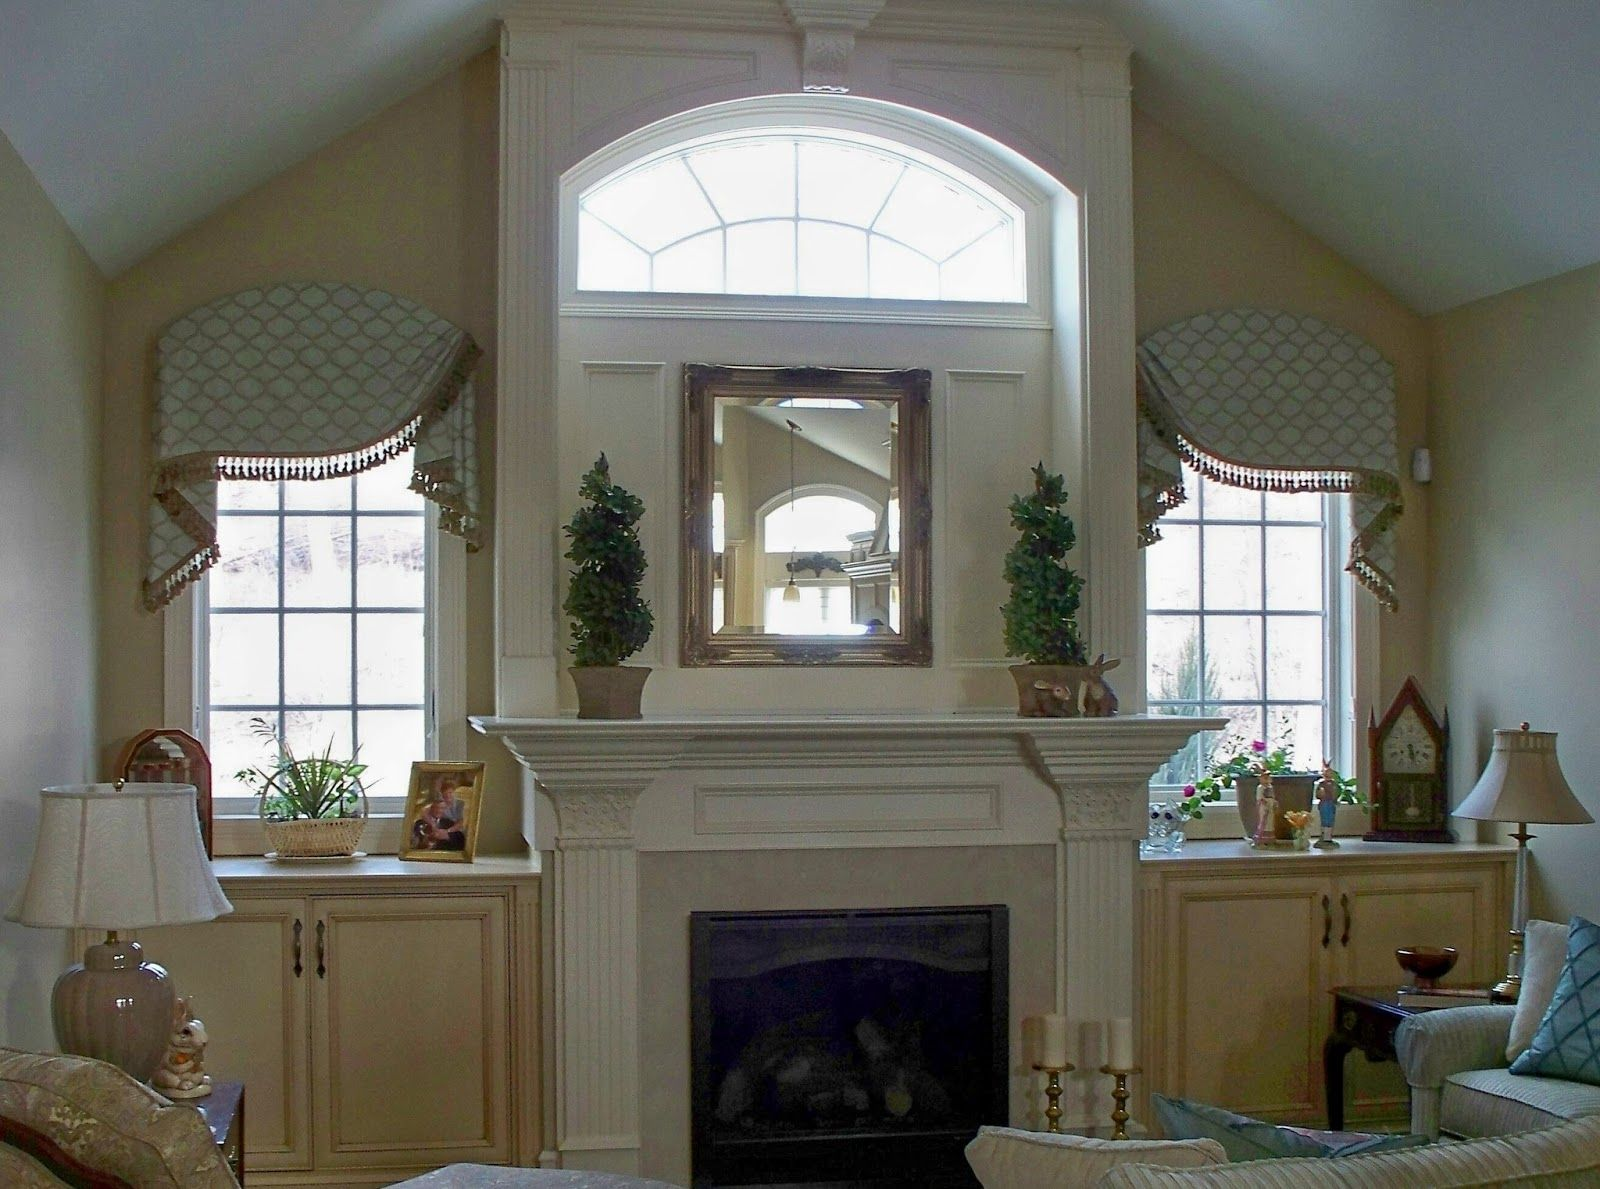 Image result for half circle window over fireplace | Scott's ...